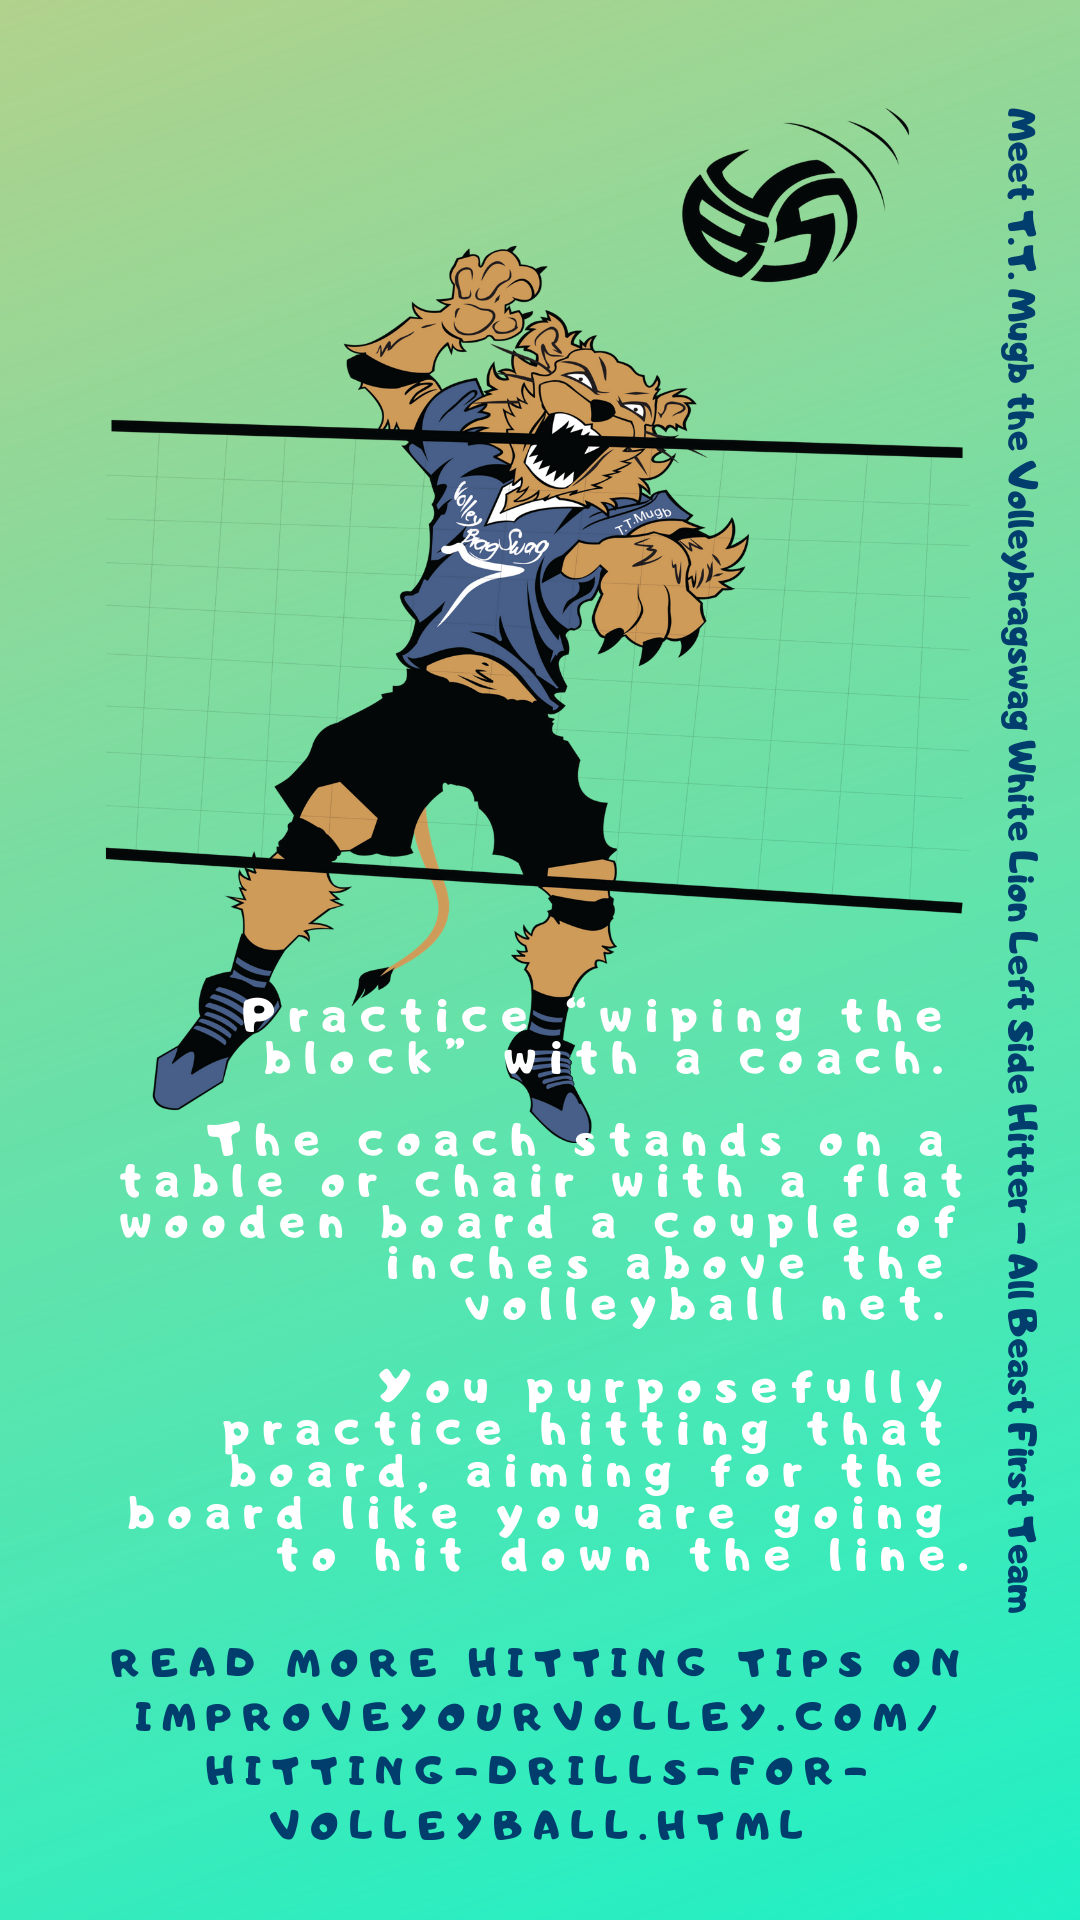 """Volleyball Spike Tips: Practice """"wiping the block"""" with a coach."""